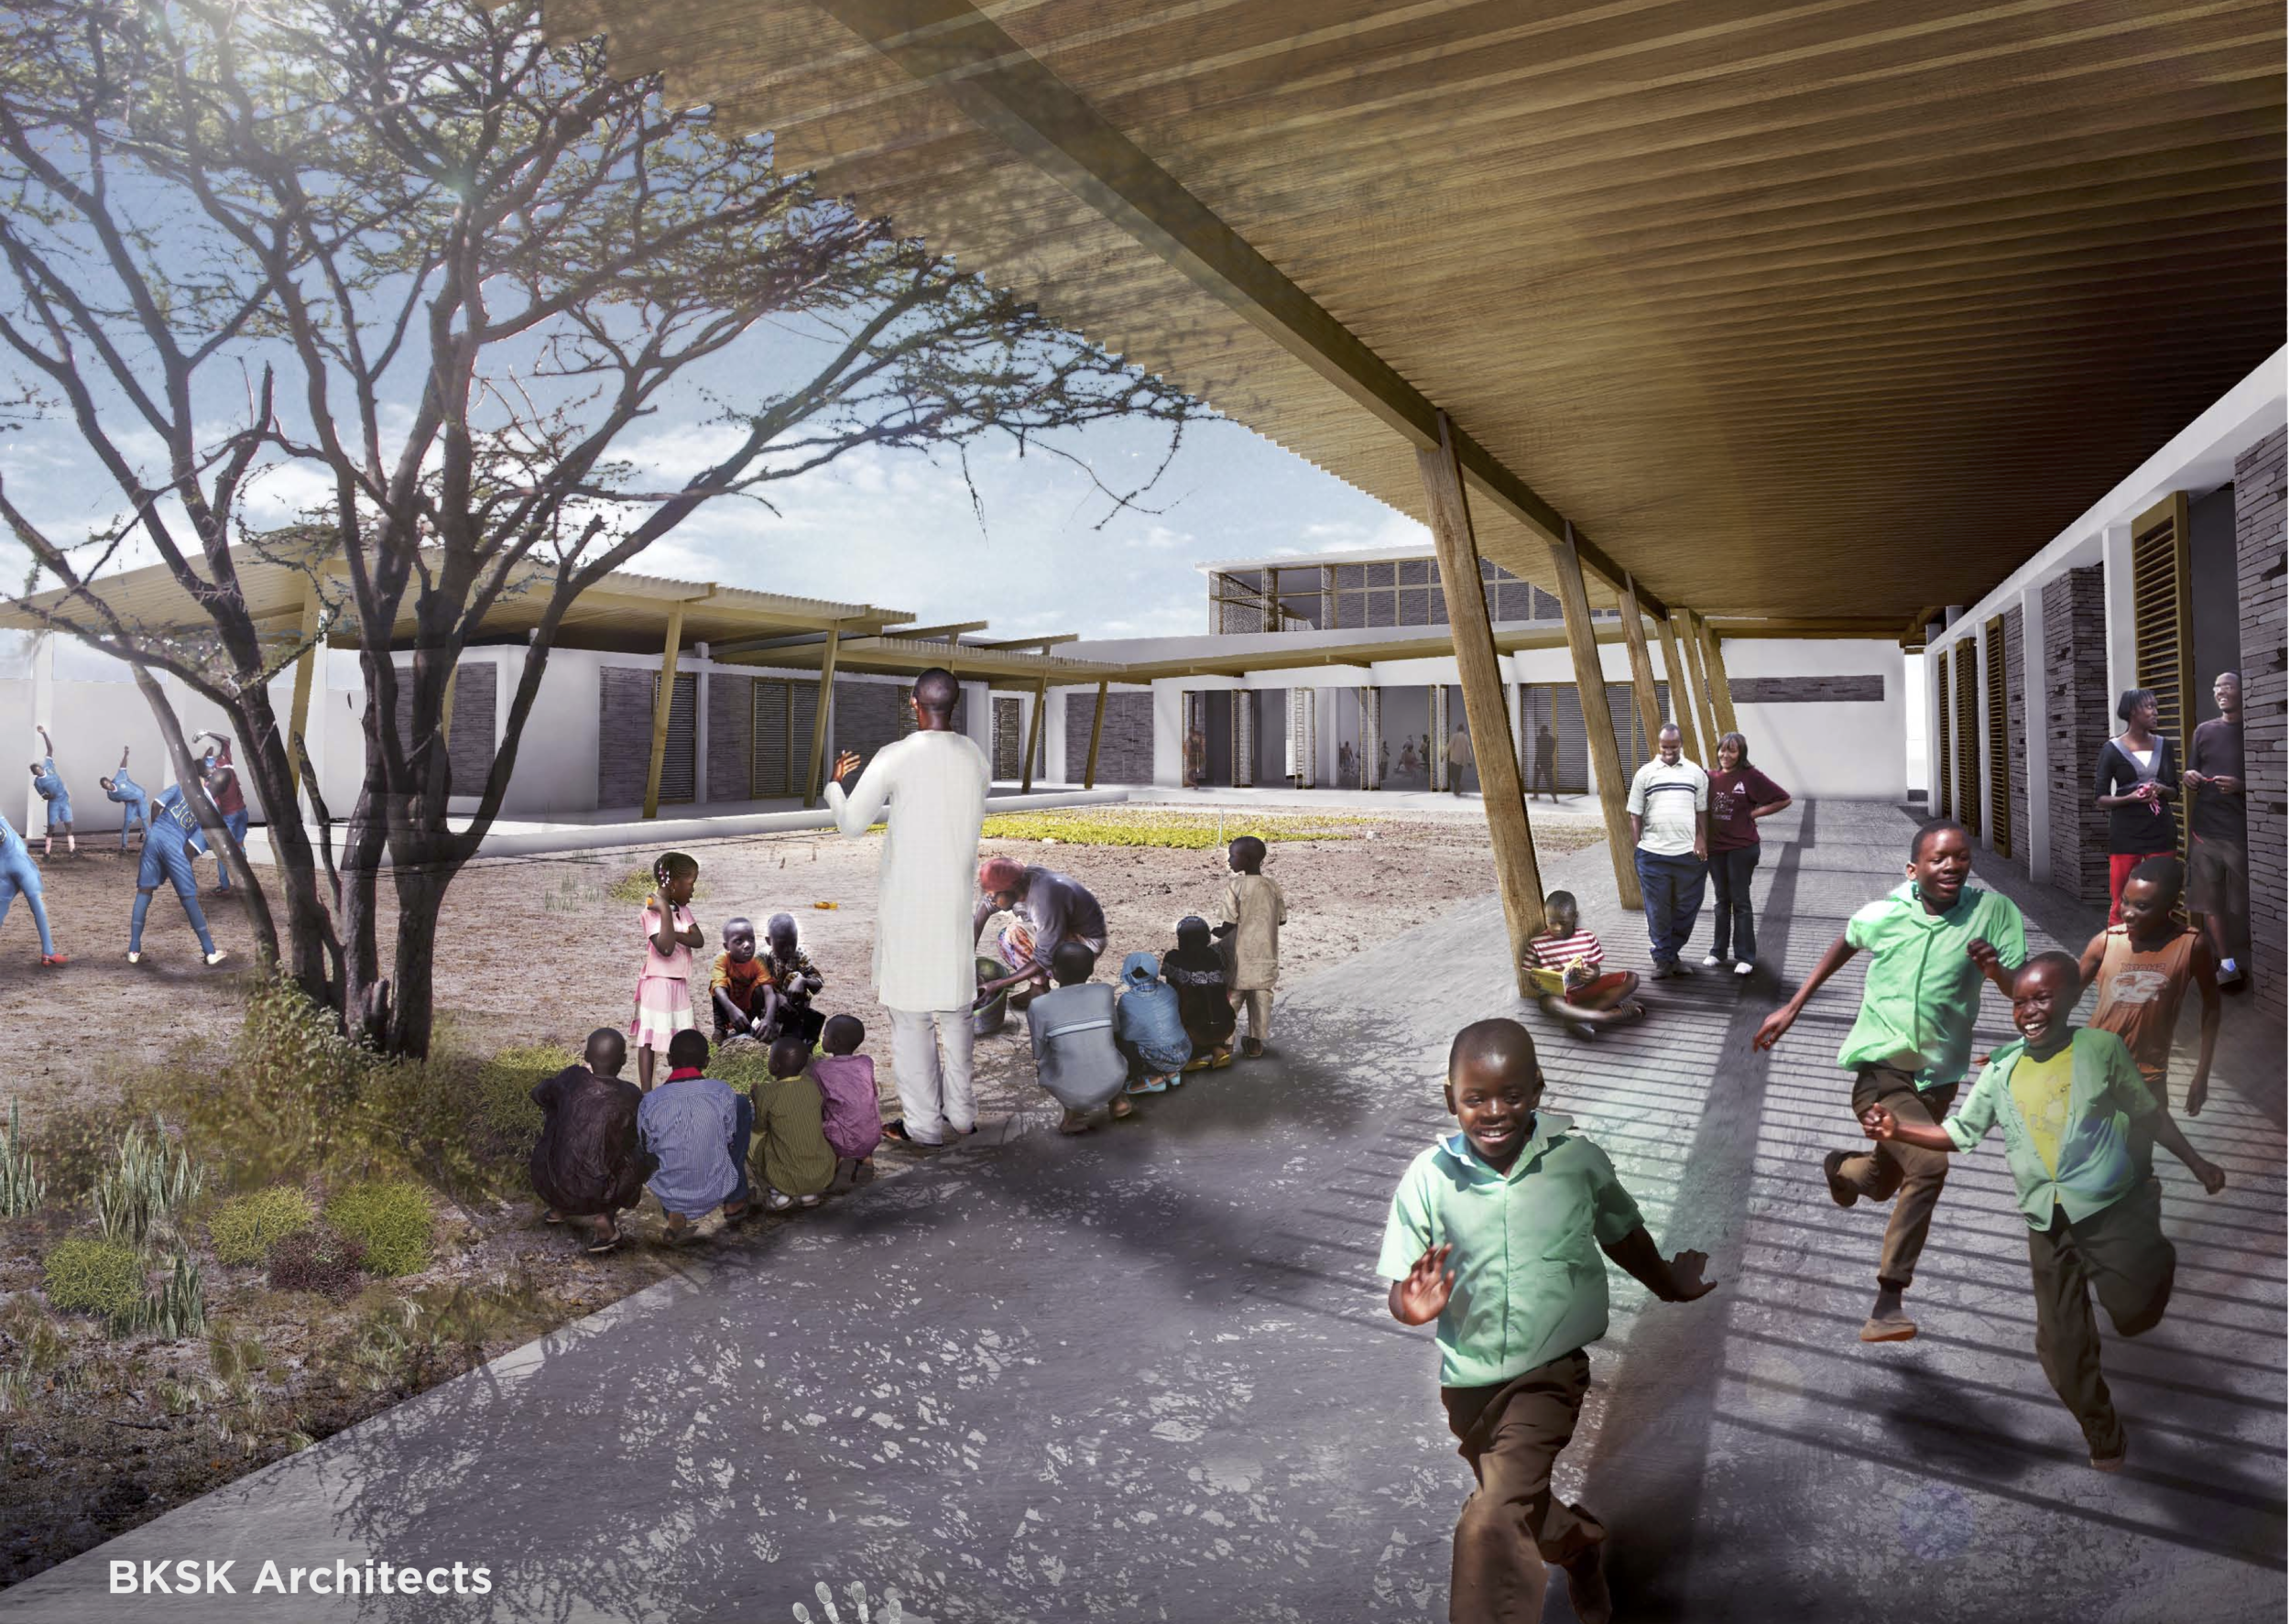 What We Do - We are building learning centers in Senegal. Our first one, the Lambaye Learning Center is currently under construction.